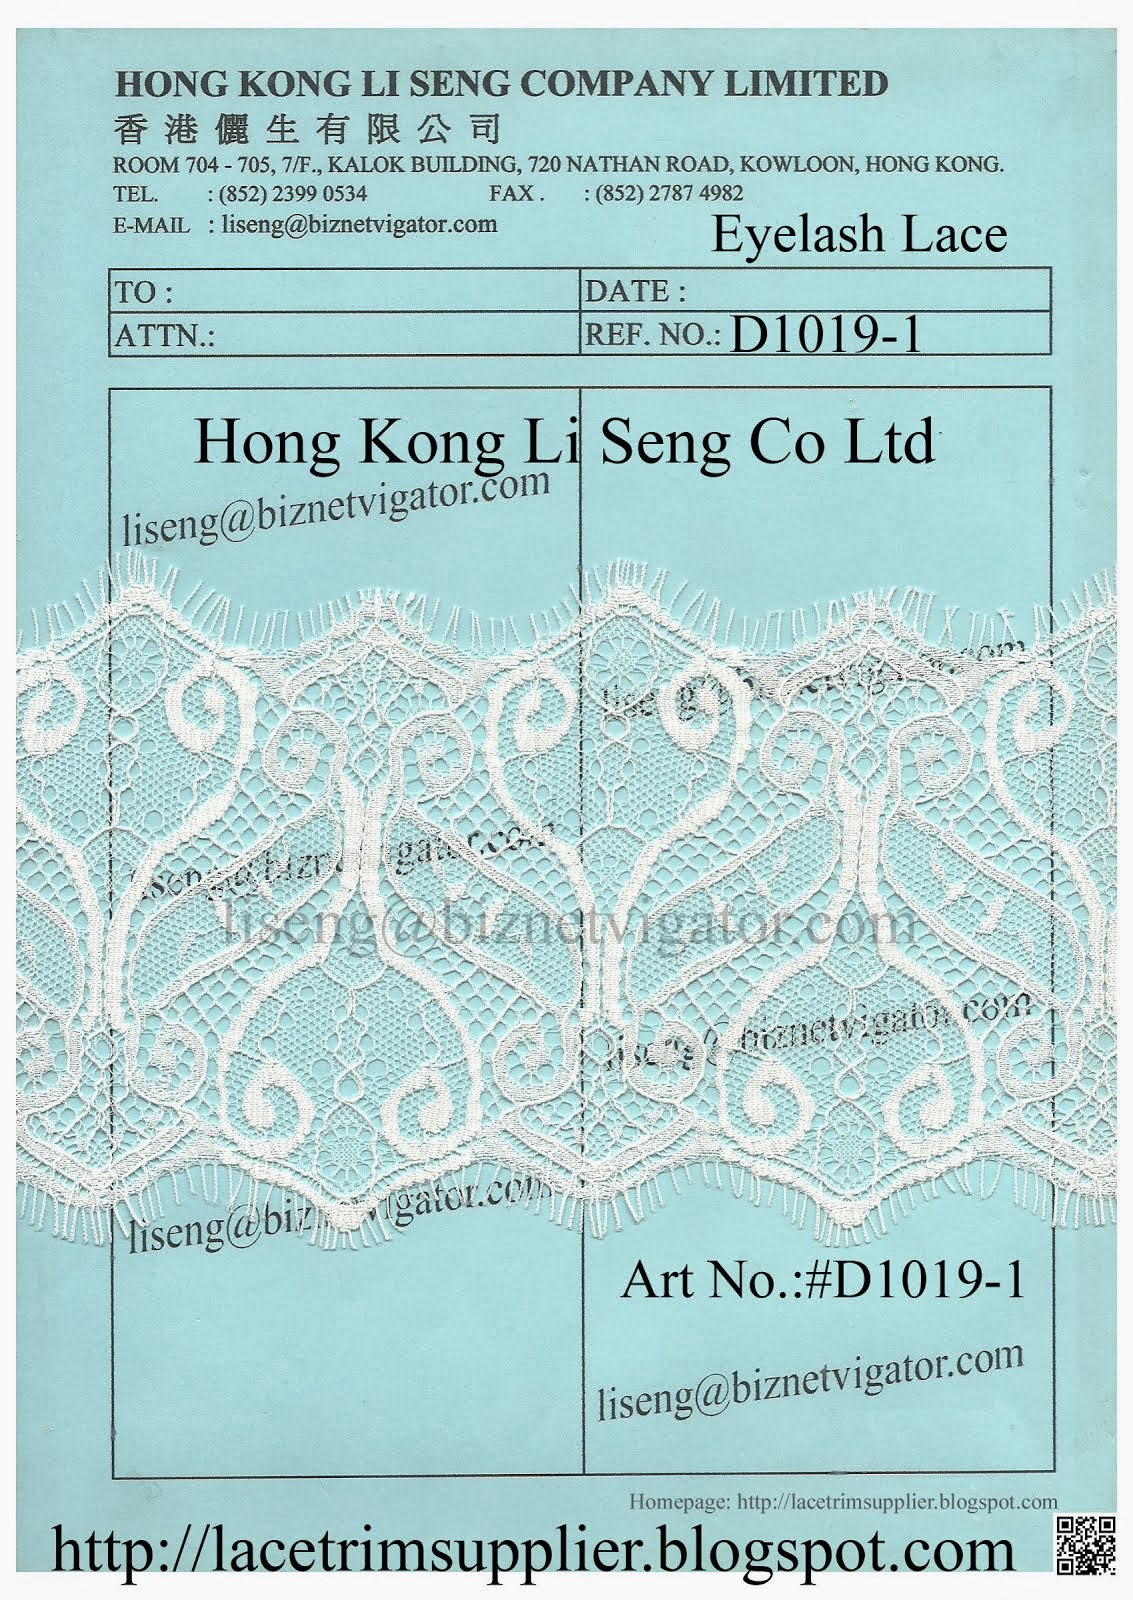 Eyelash Lace Trims Suppliers - Hong Kong Li Seng Co Ltd